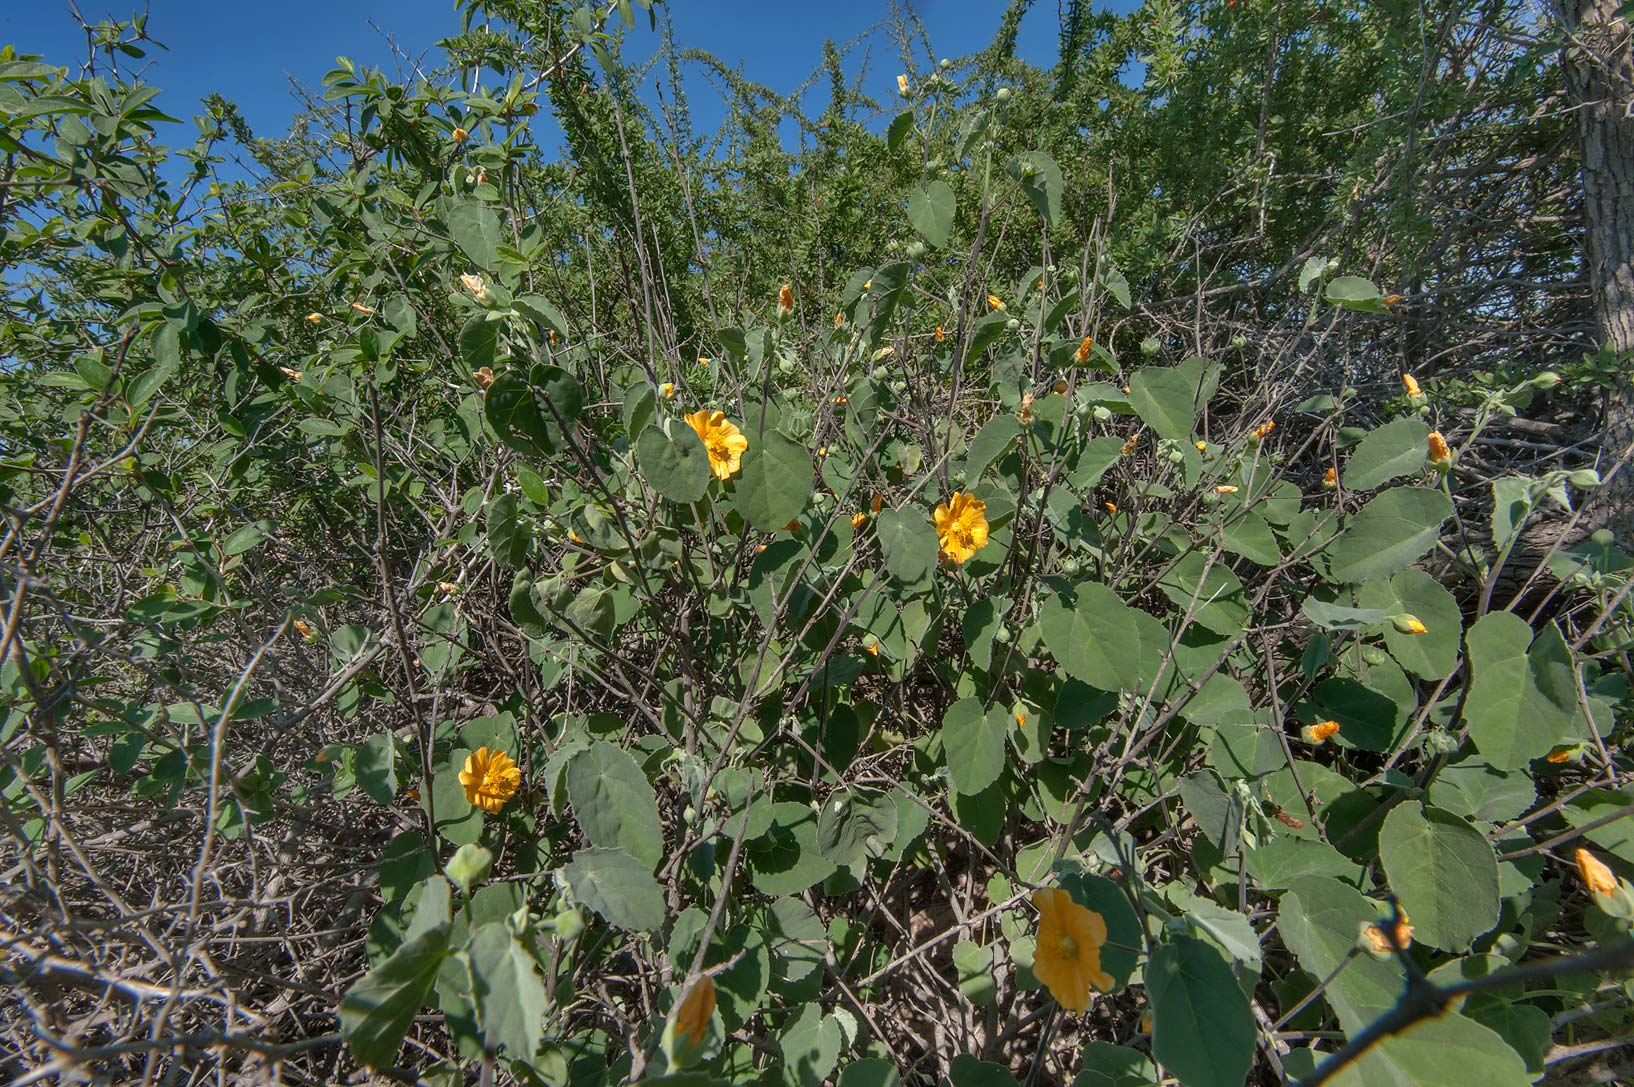 Blooming Texas Indian-mallow (Abutilon fruticosum...Al Magdah farms. North-western Qatar